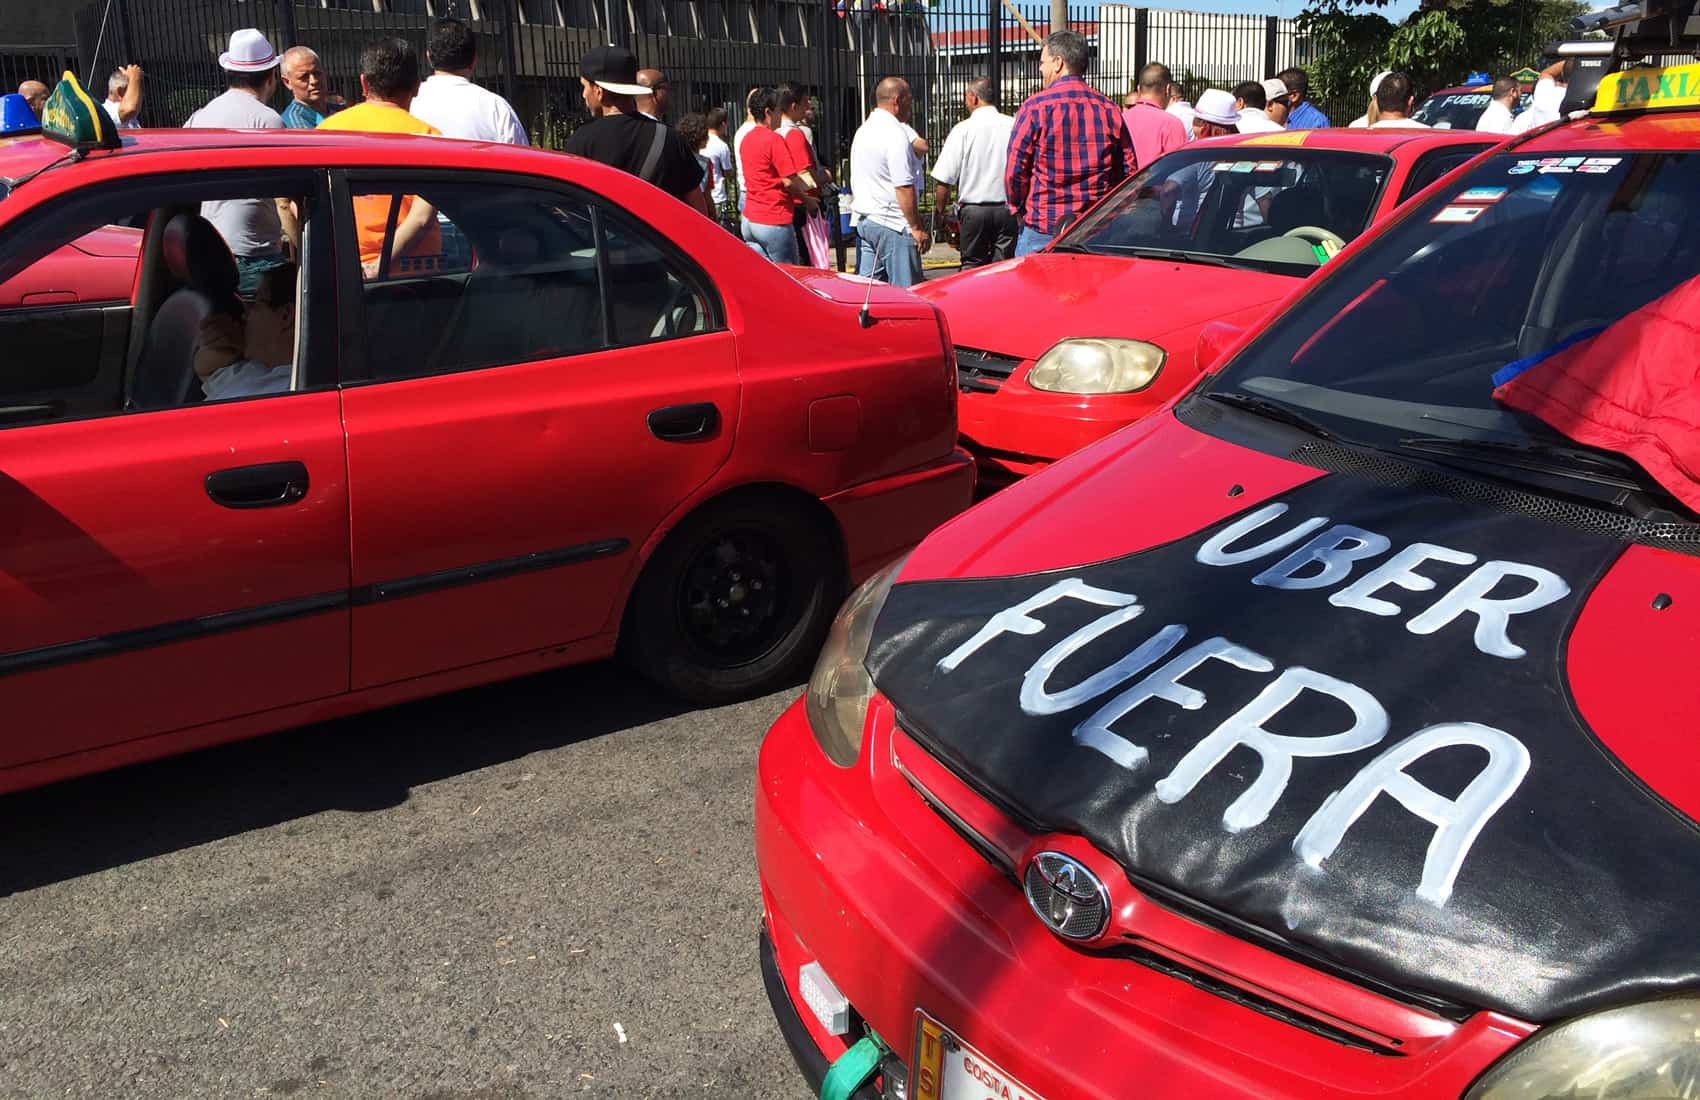 Taxis protest Uber